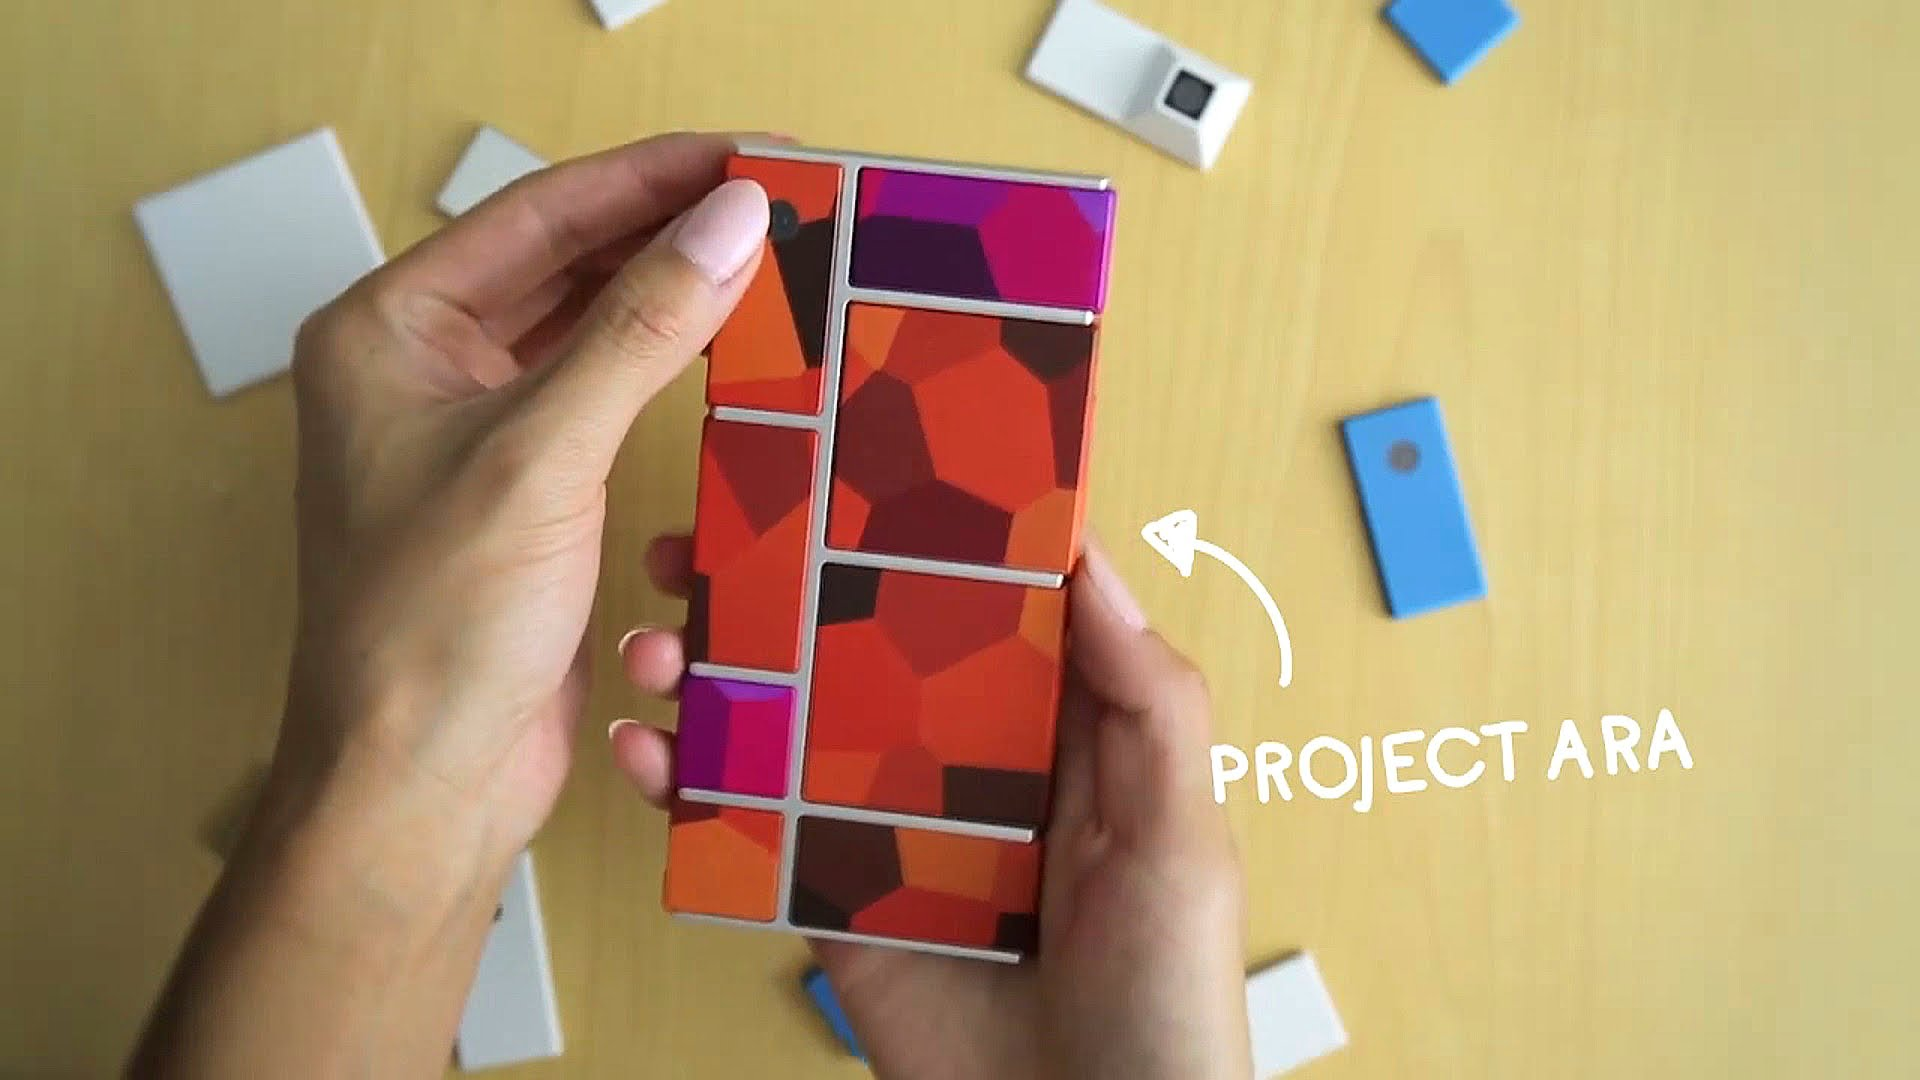 Google's Project Ara officially unveiled